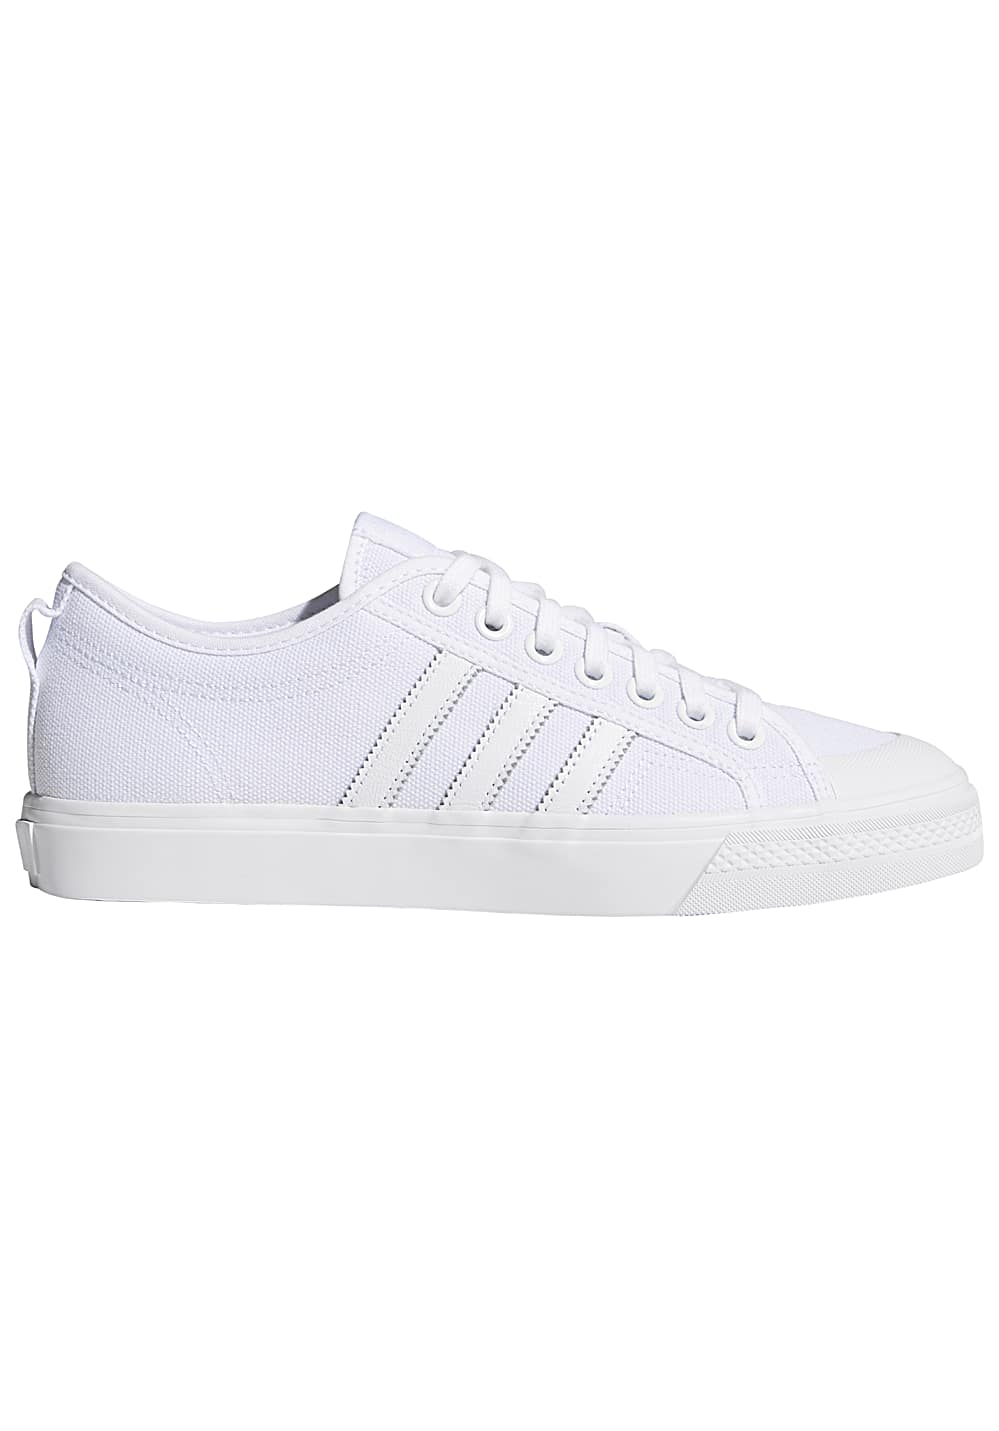 ADIDAS ORIGINALS Nizza - Sneakers voor Heren - Wit